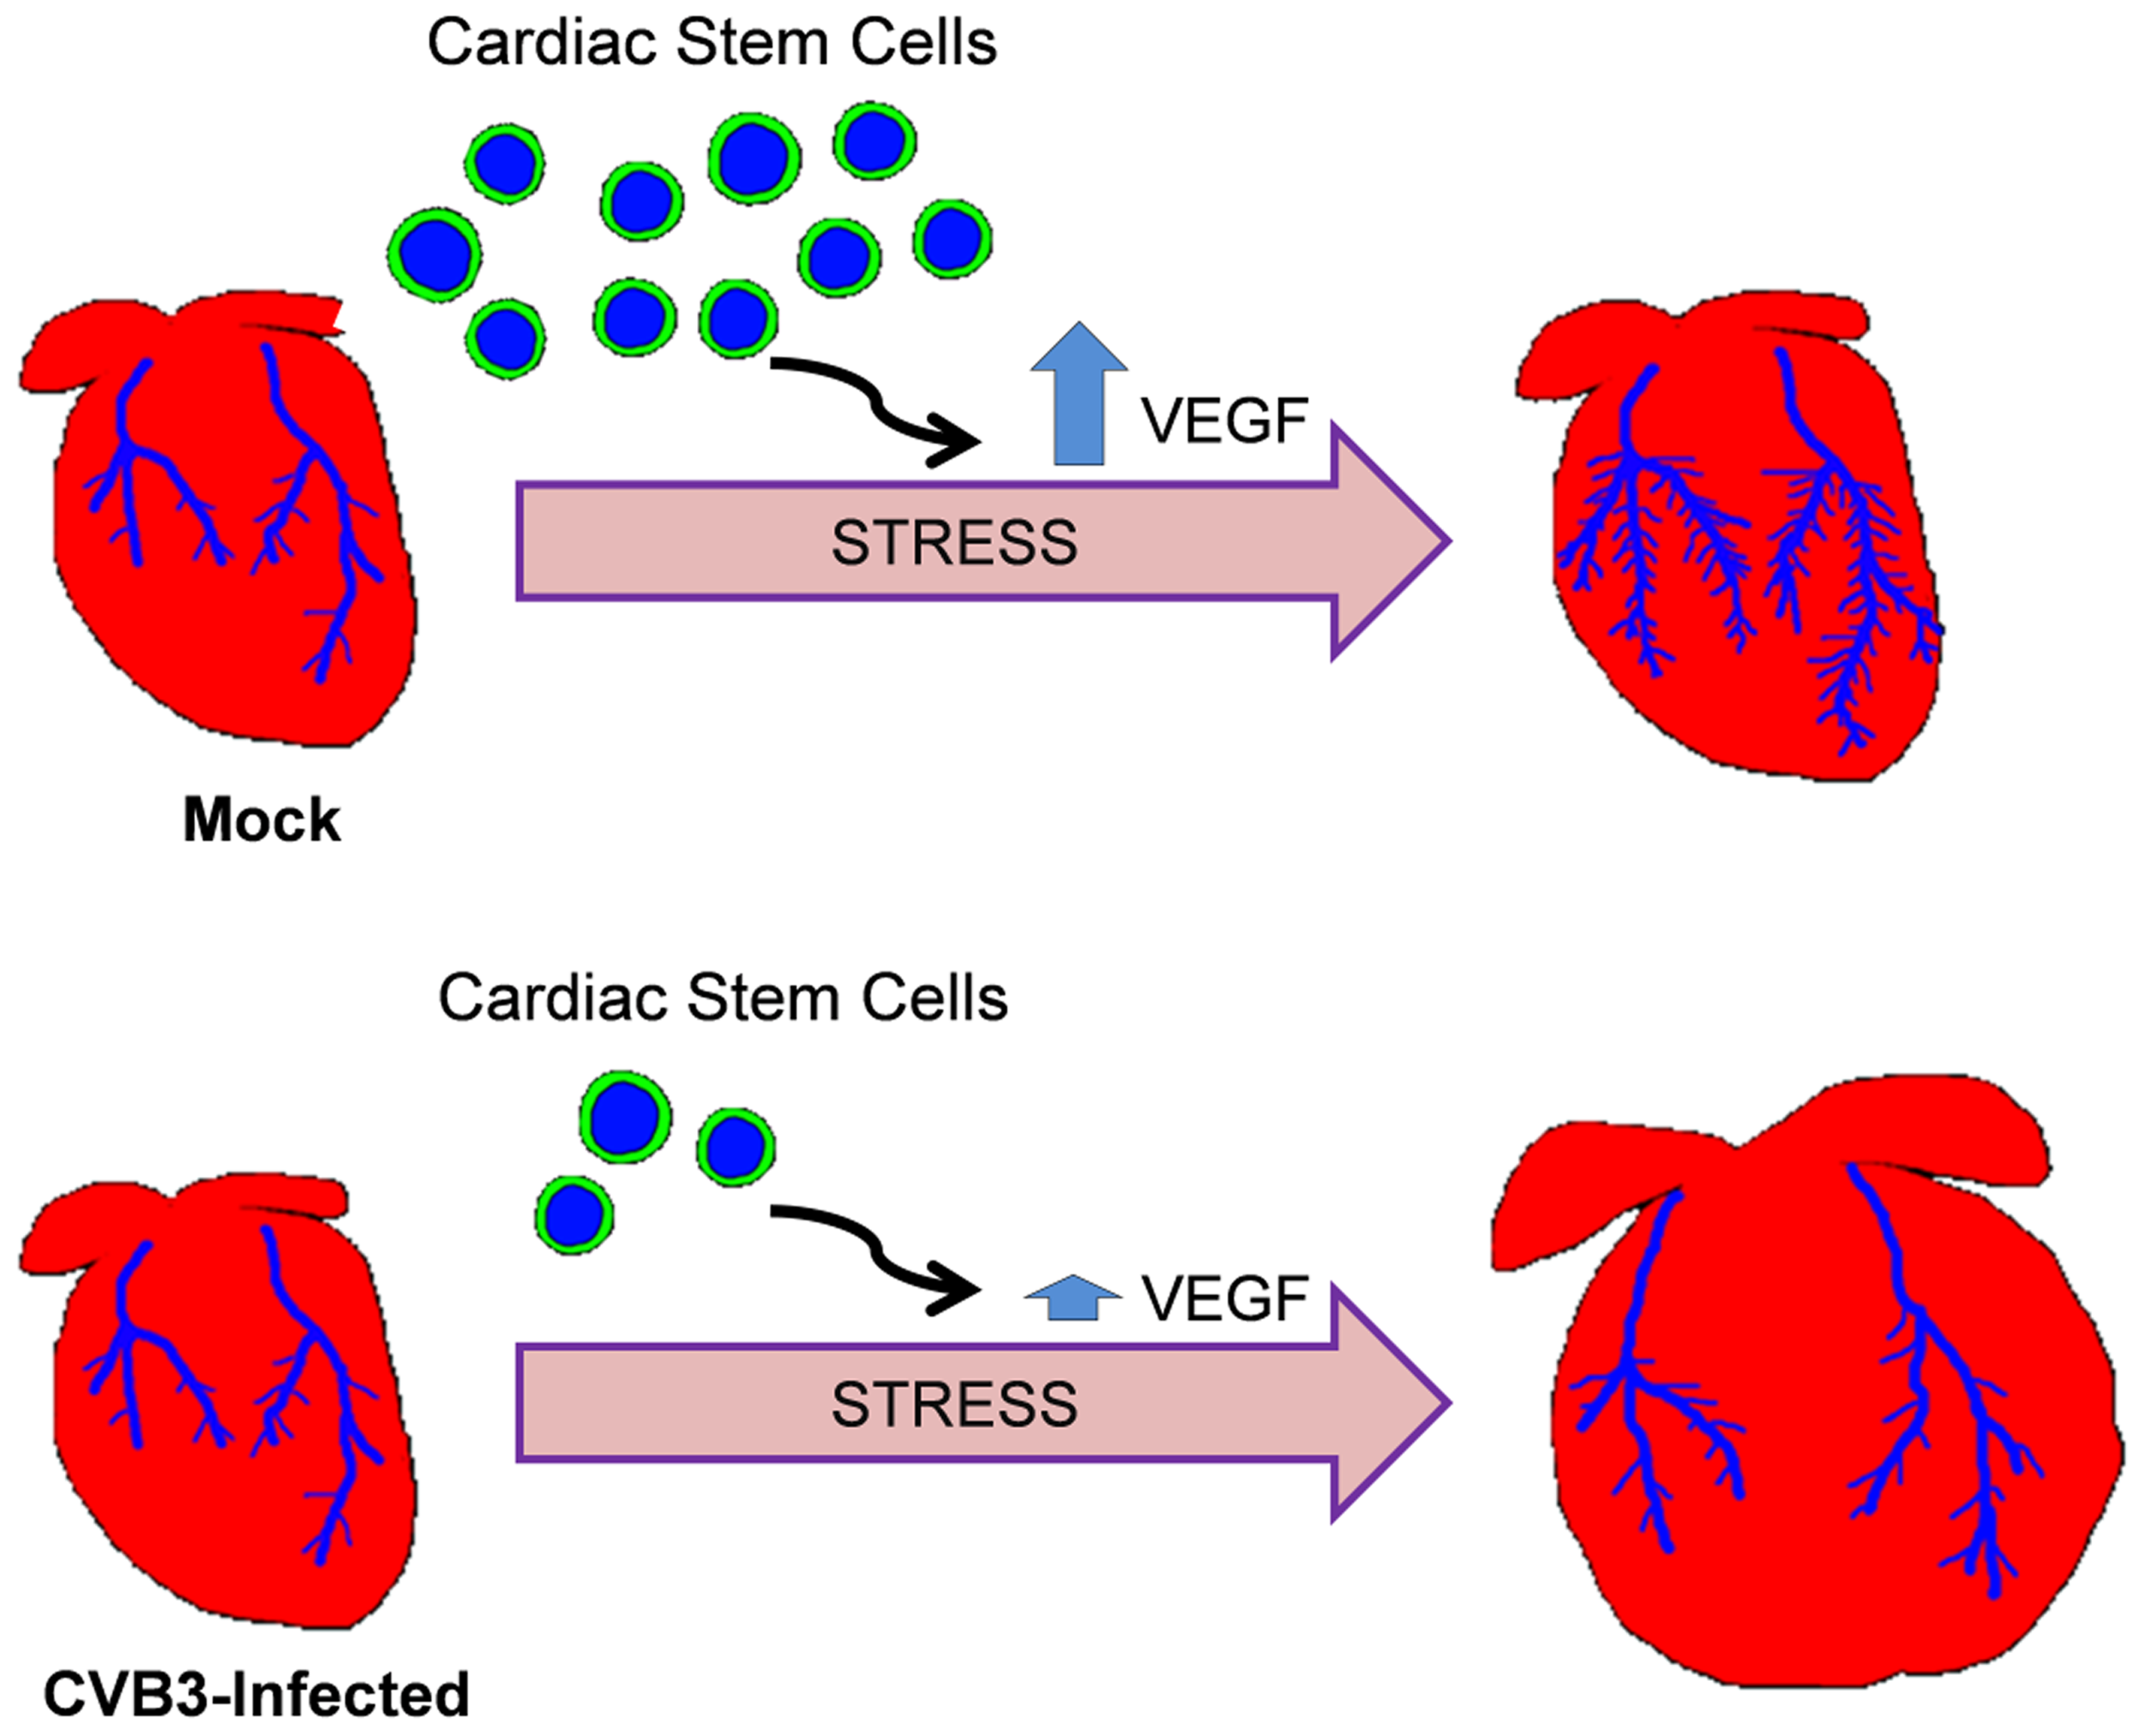 Model of adult heart failure in juvenile CVB3-infected mice.